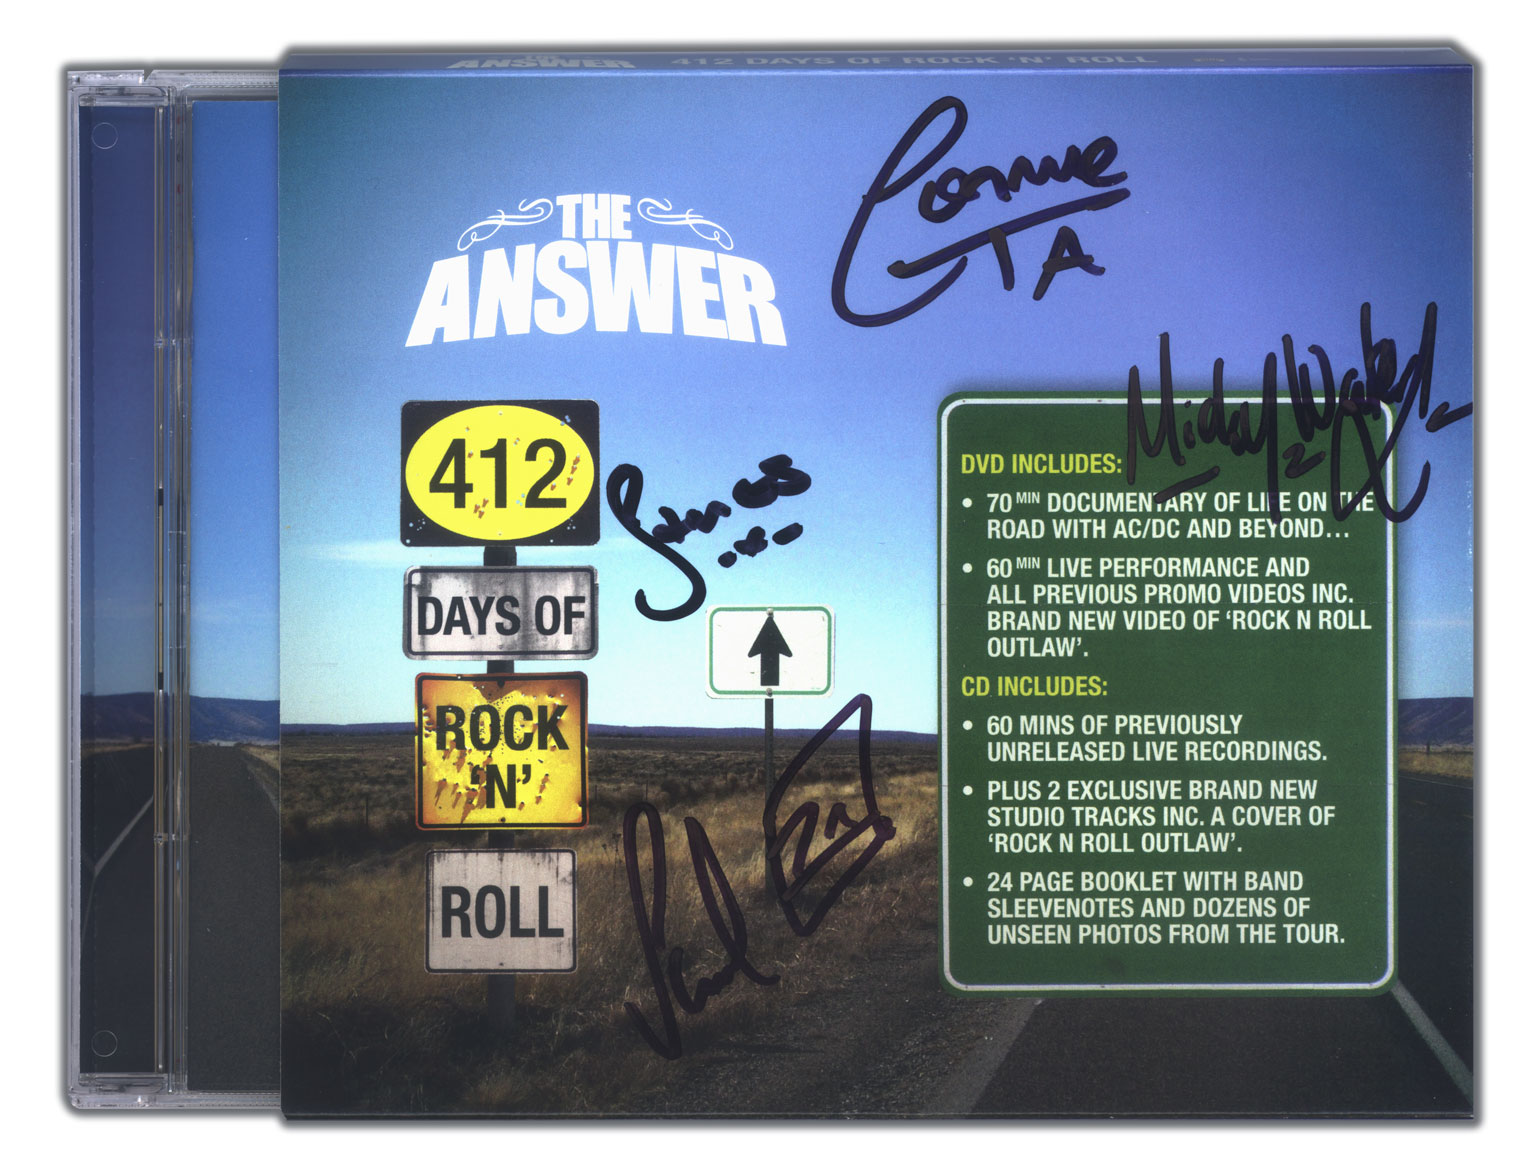 Signed The Answer 412 Days Of Rock N Roll DVD